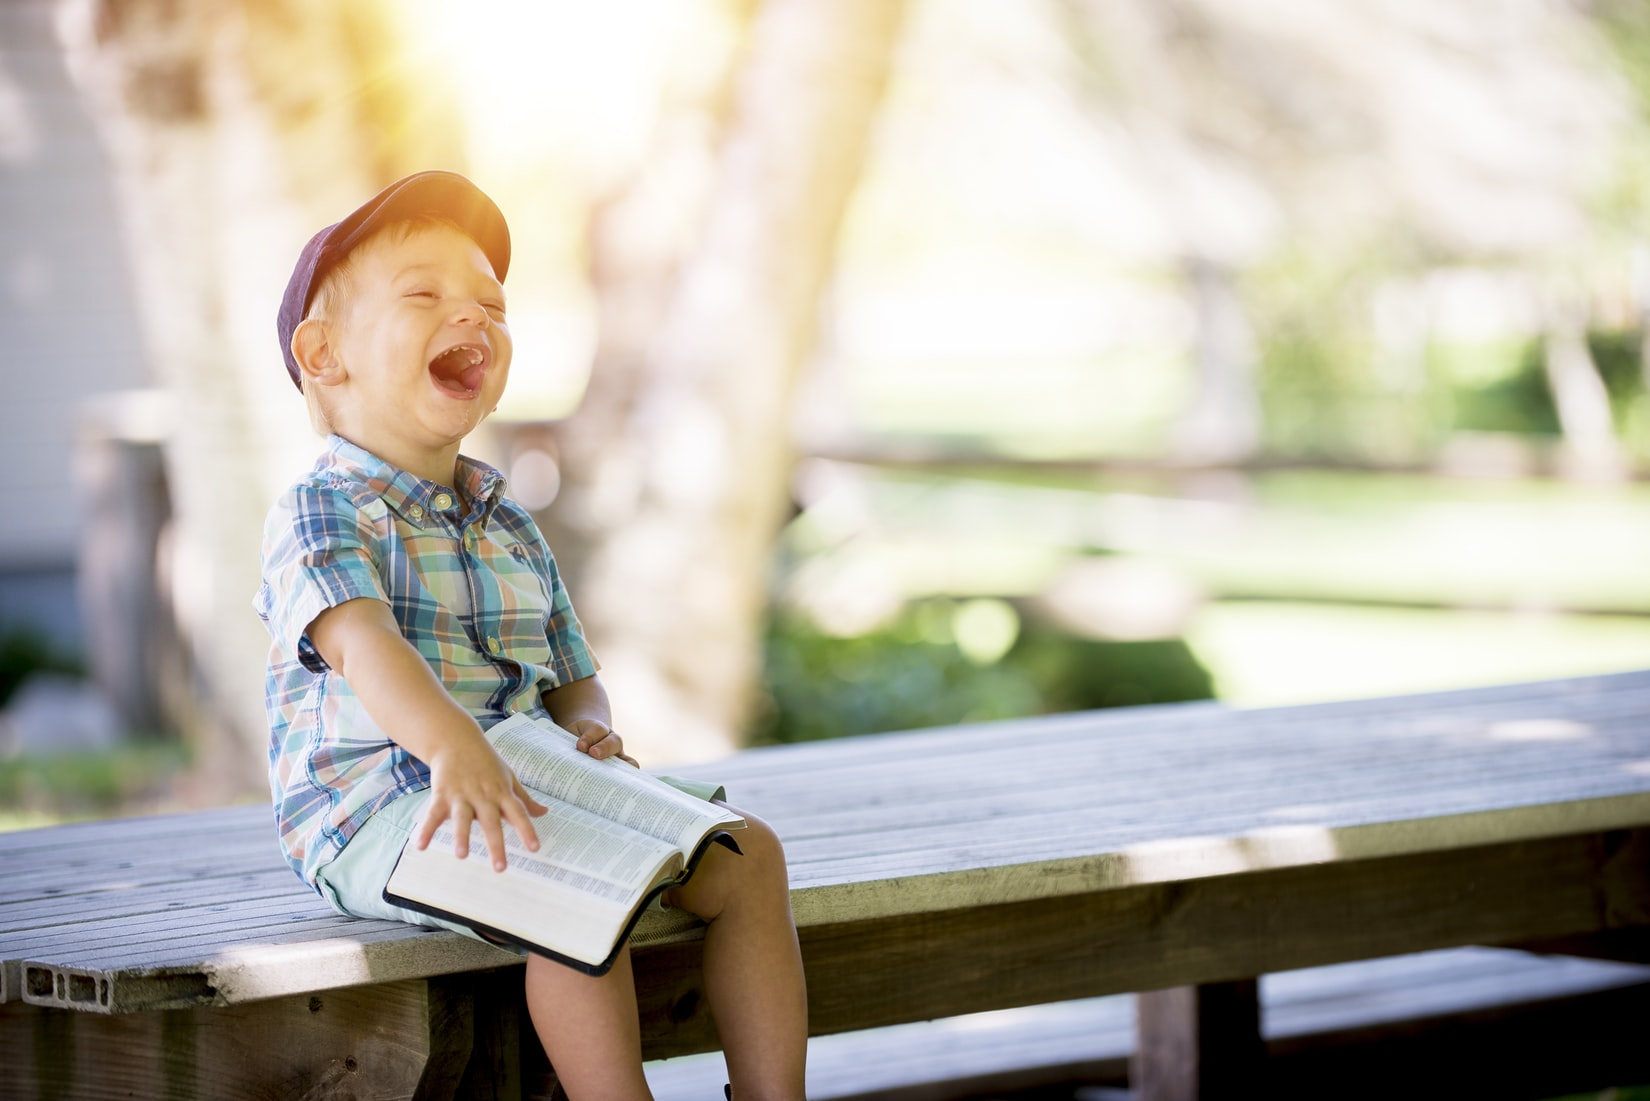 Boy sitting on bench and laughing while holding the bible